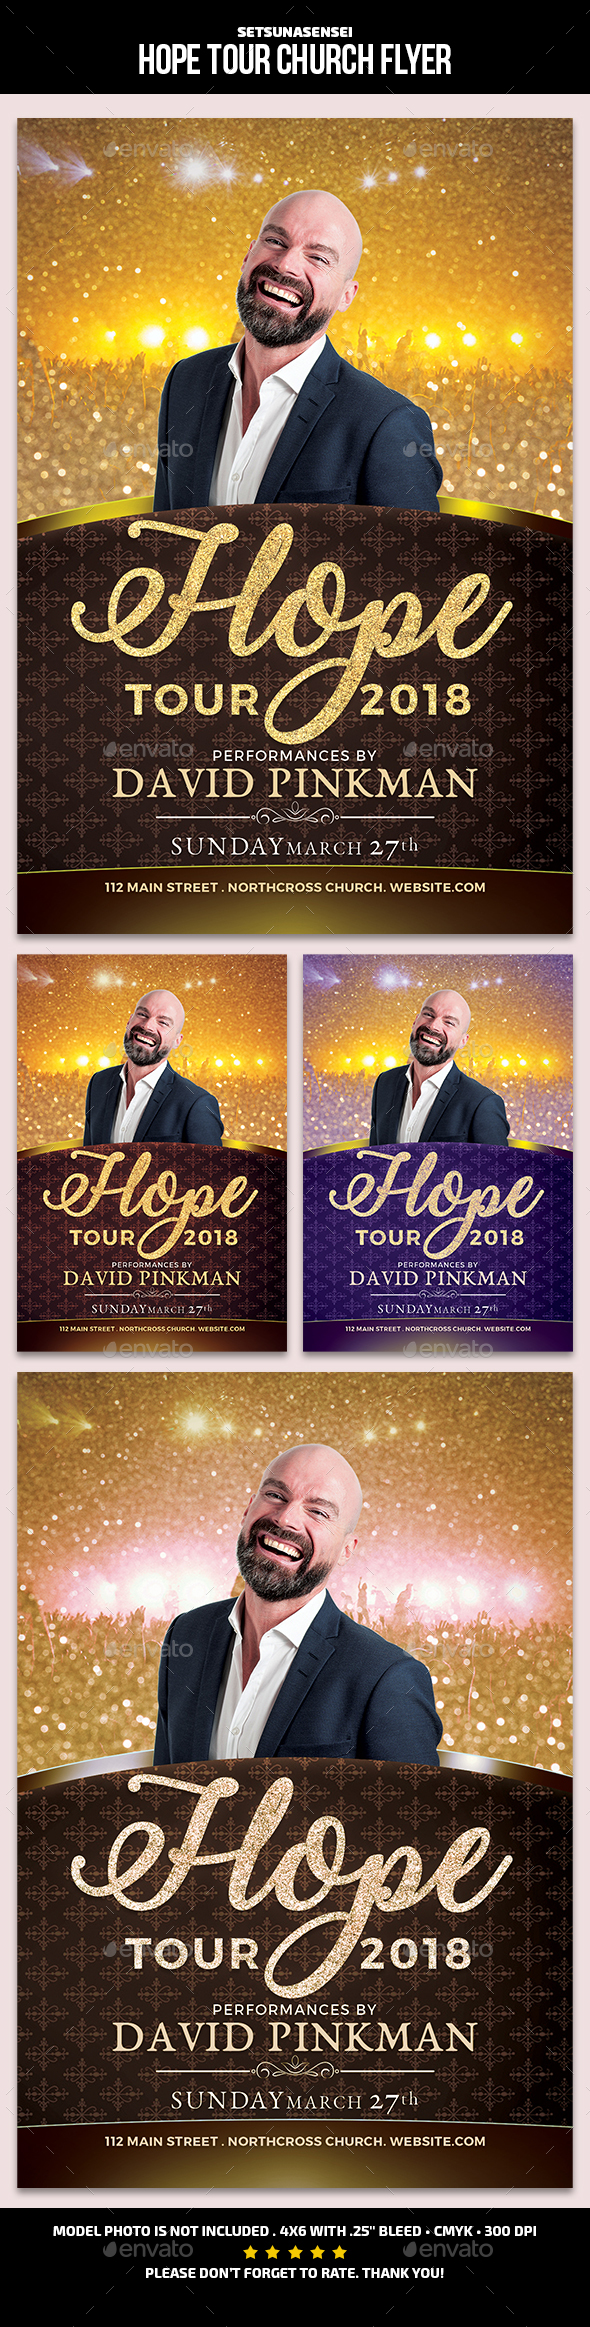 GraphicRiver Hope Tour Church Flyer 21199510